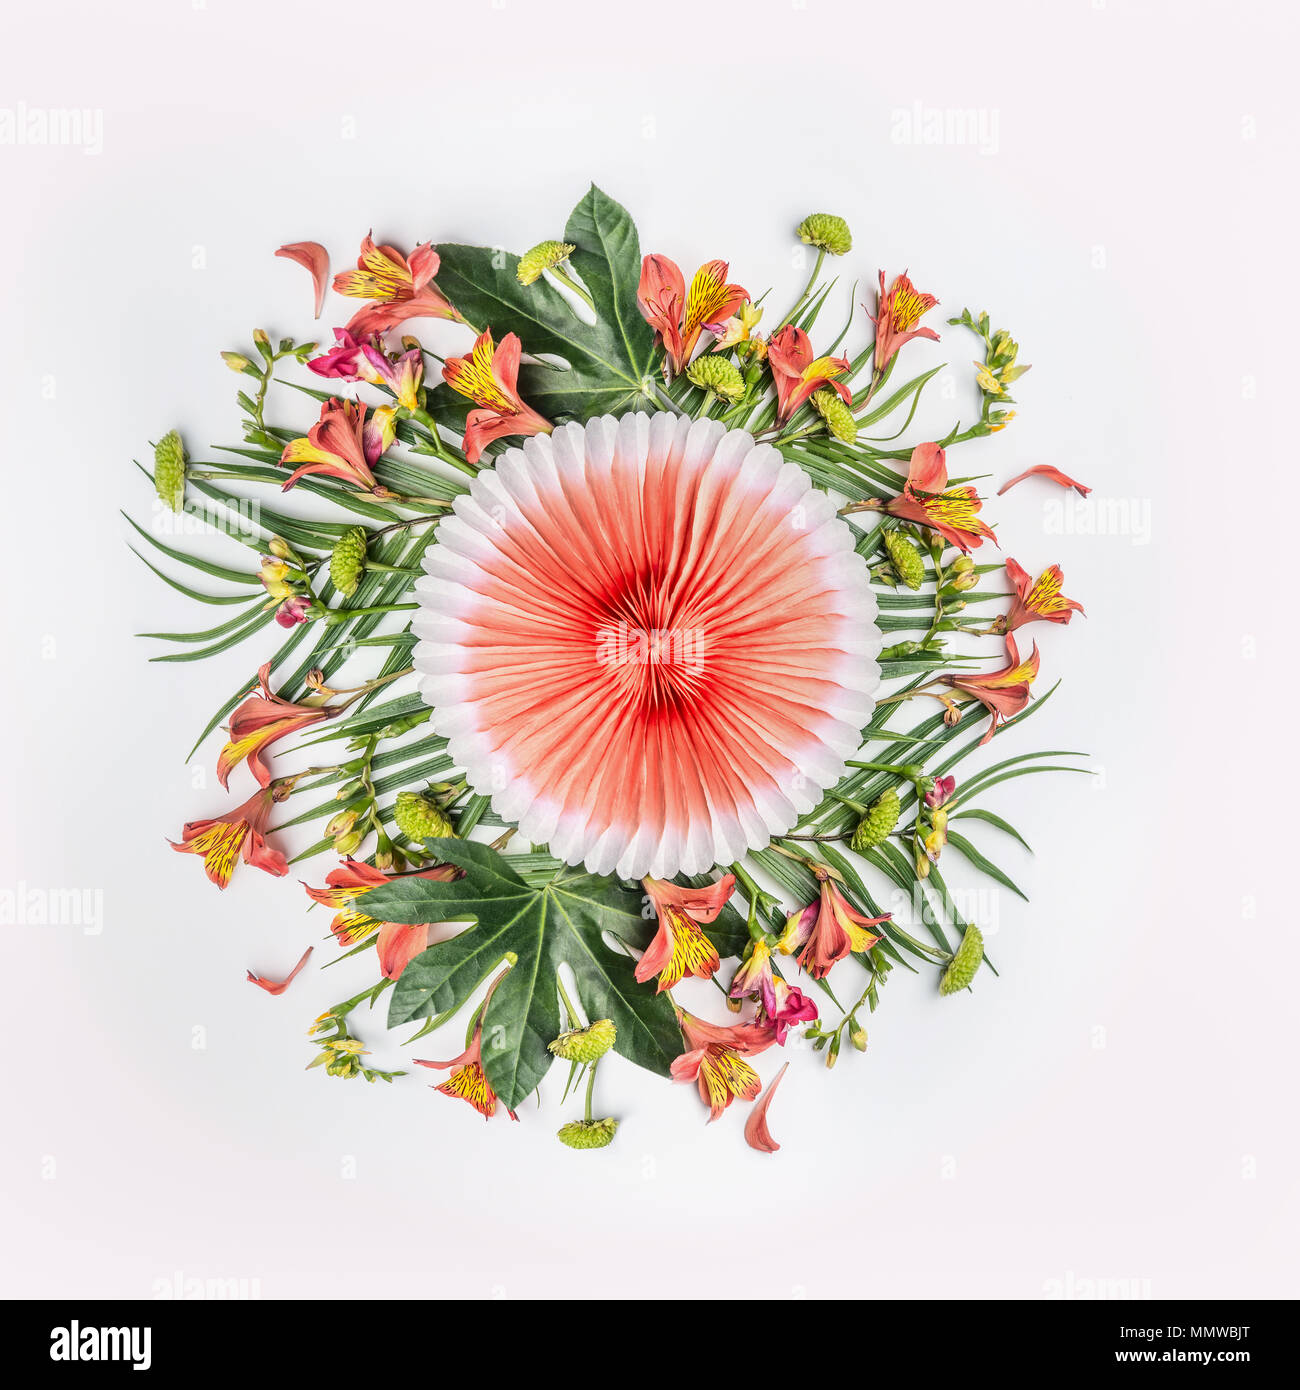 Summer Tropical Round Flowers Composition With Palm Leaves And